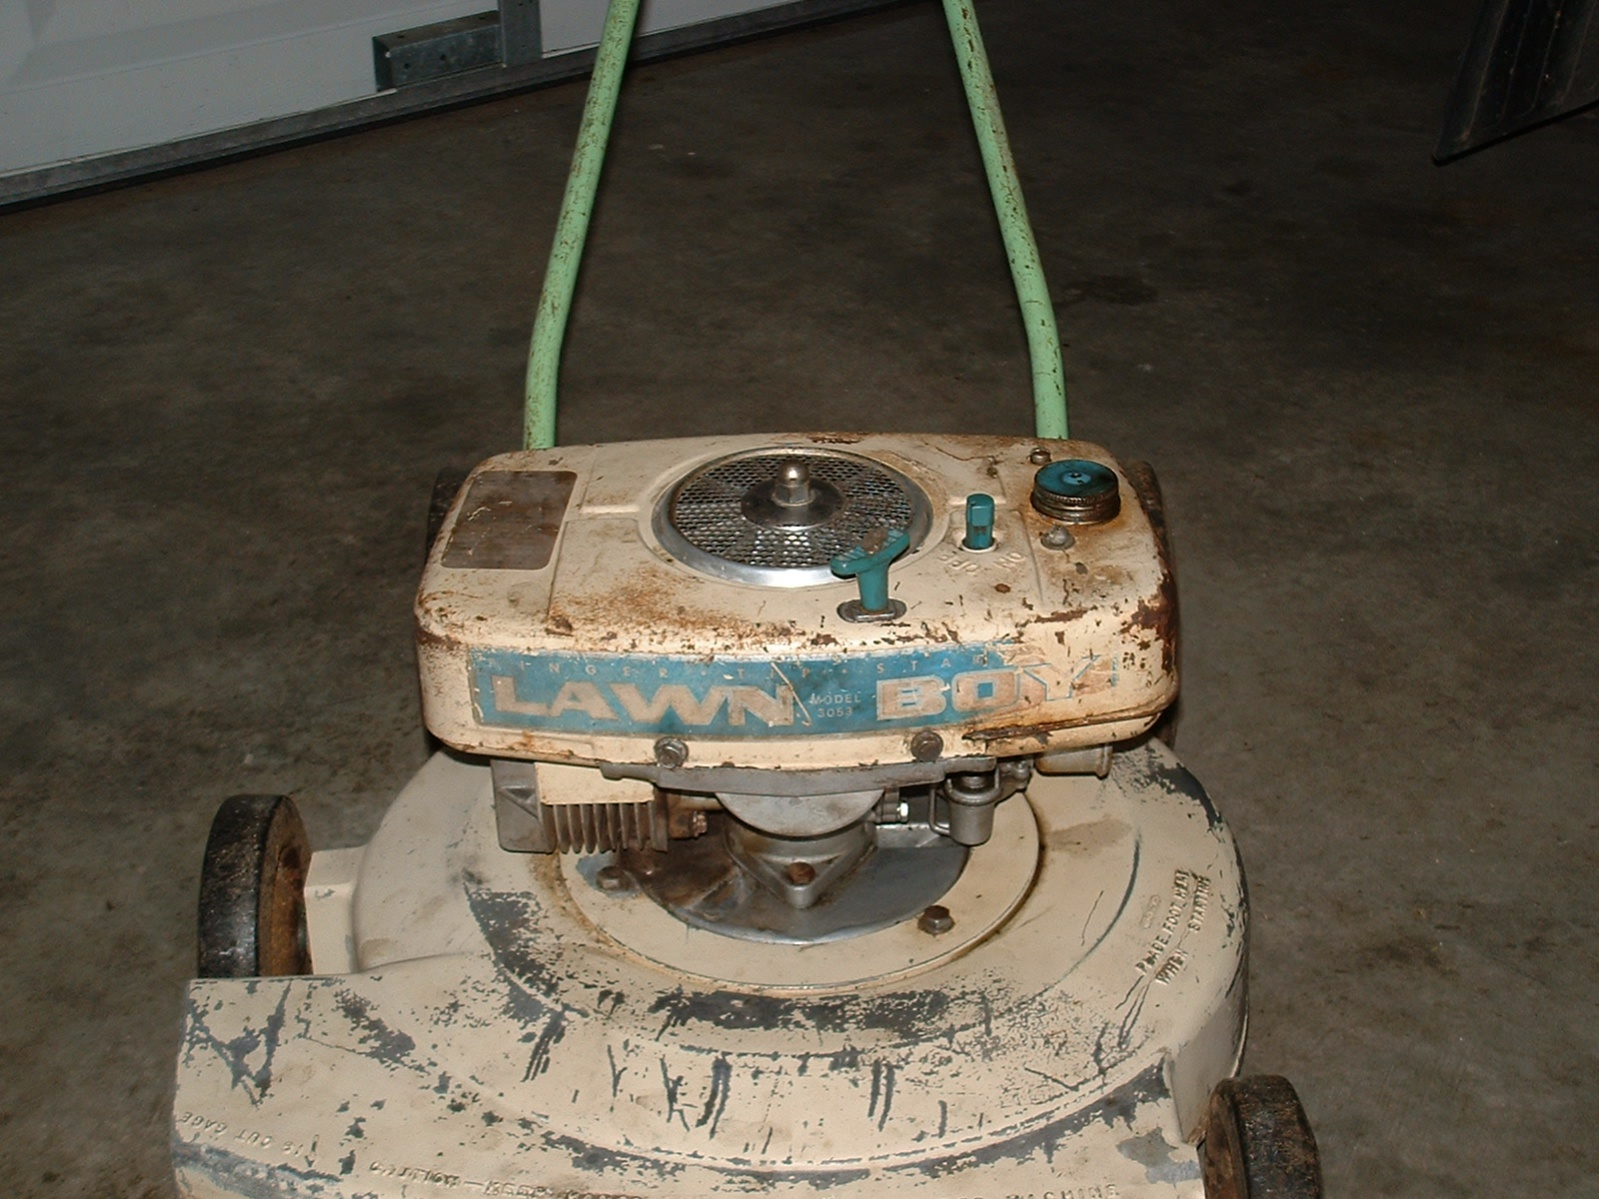 lawn boy 3053 restored page 5 mytractorforumcom the